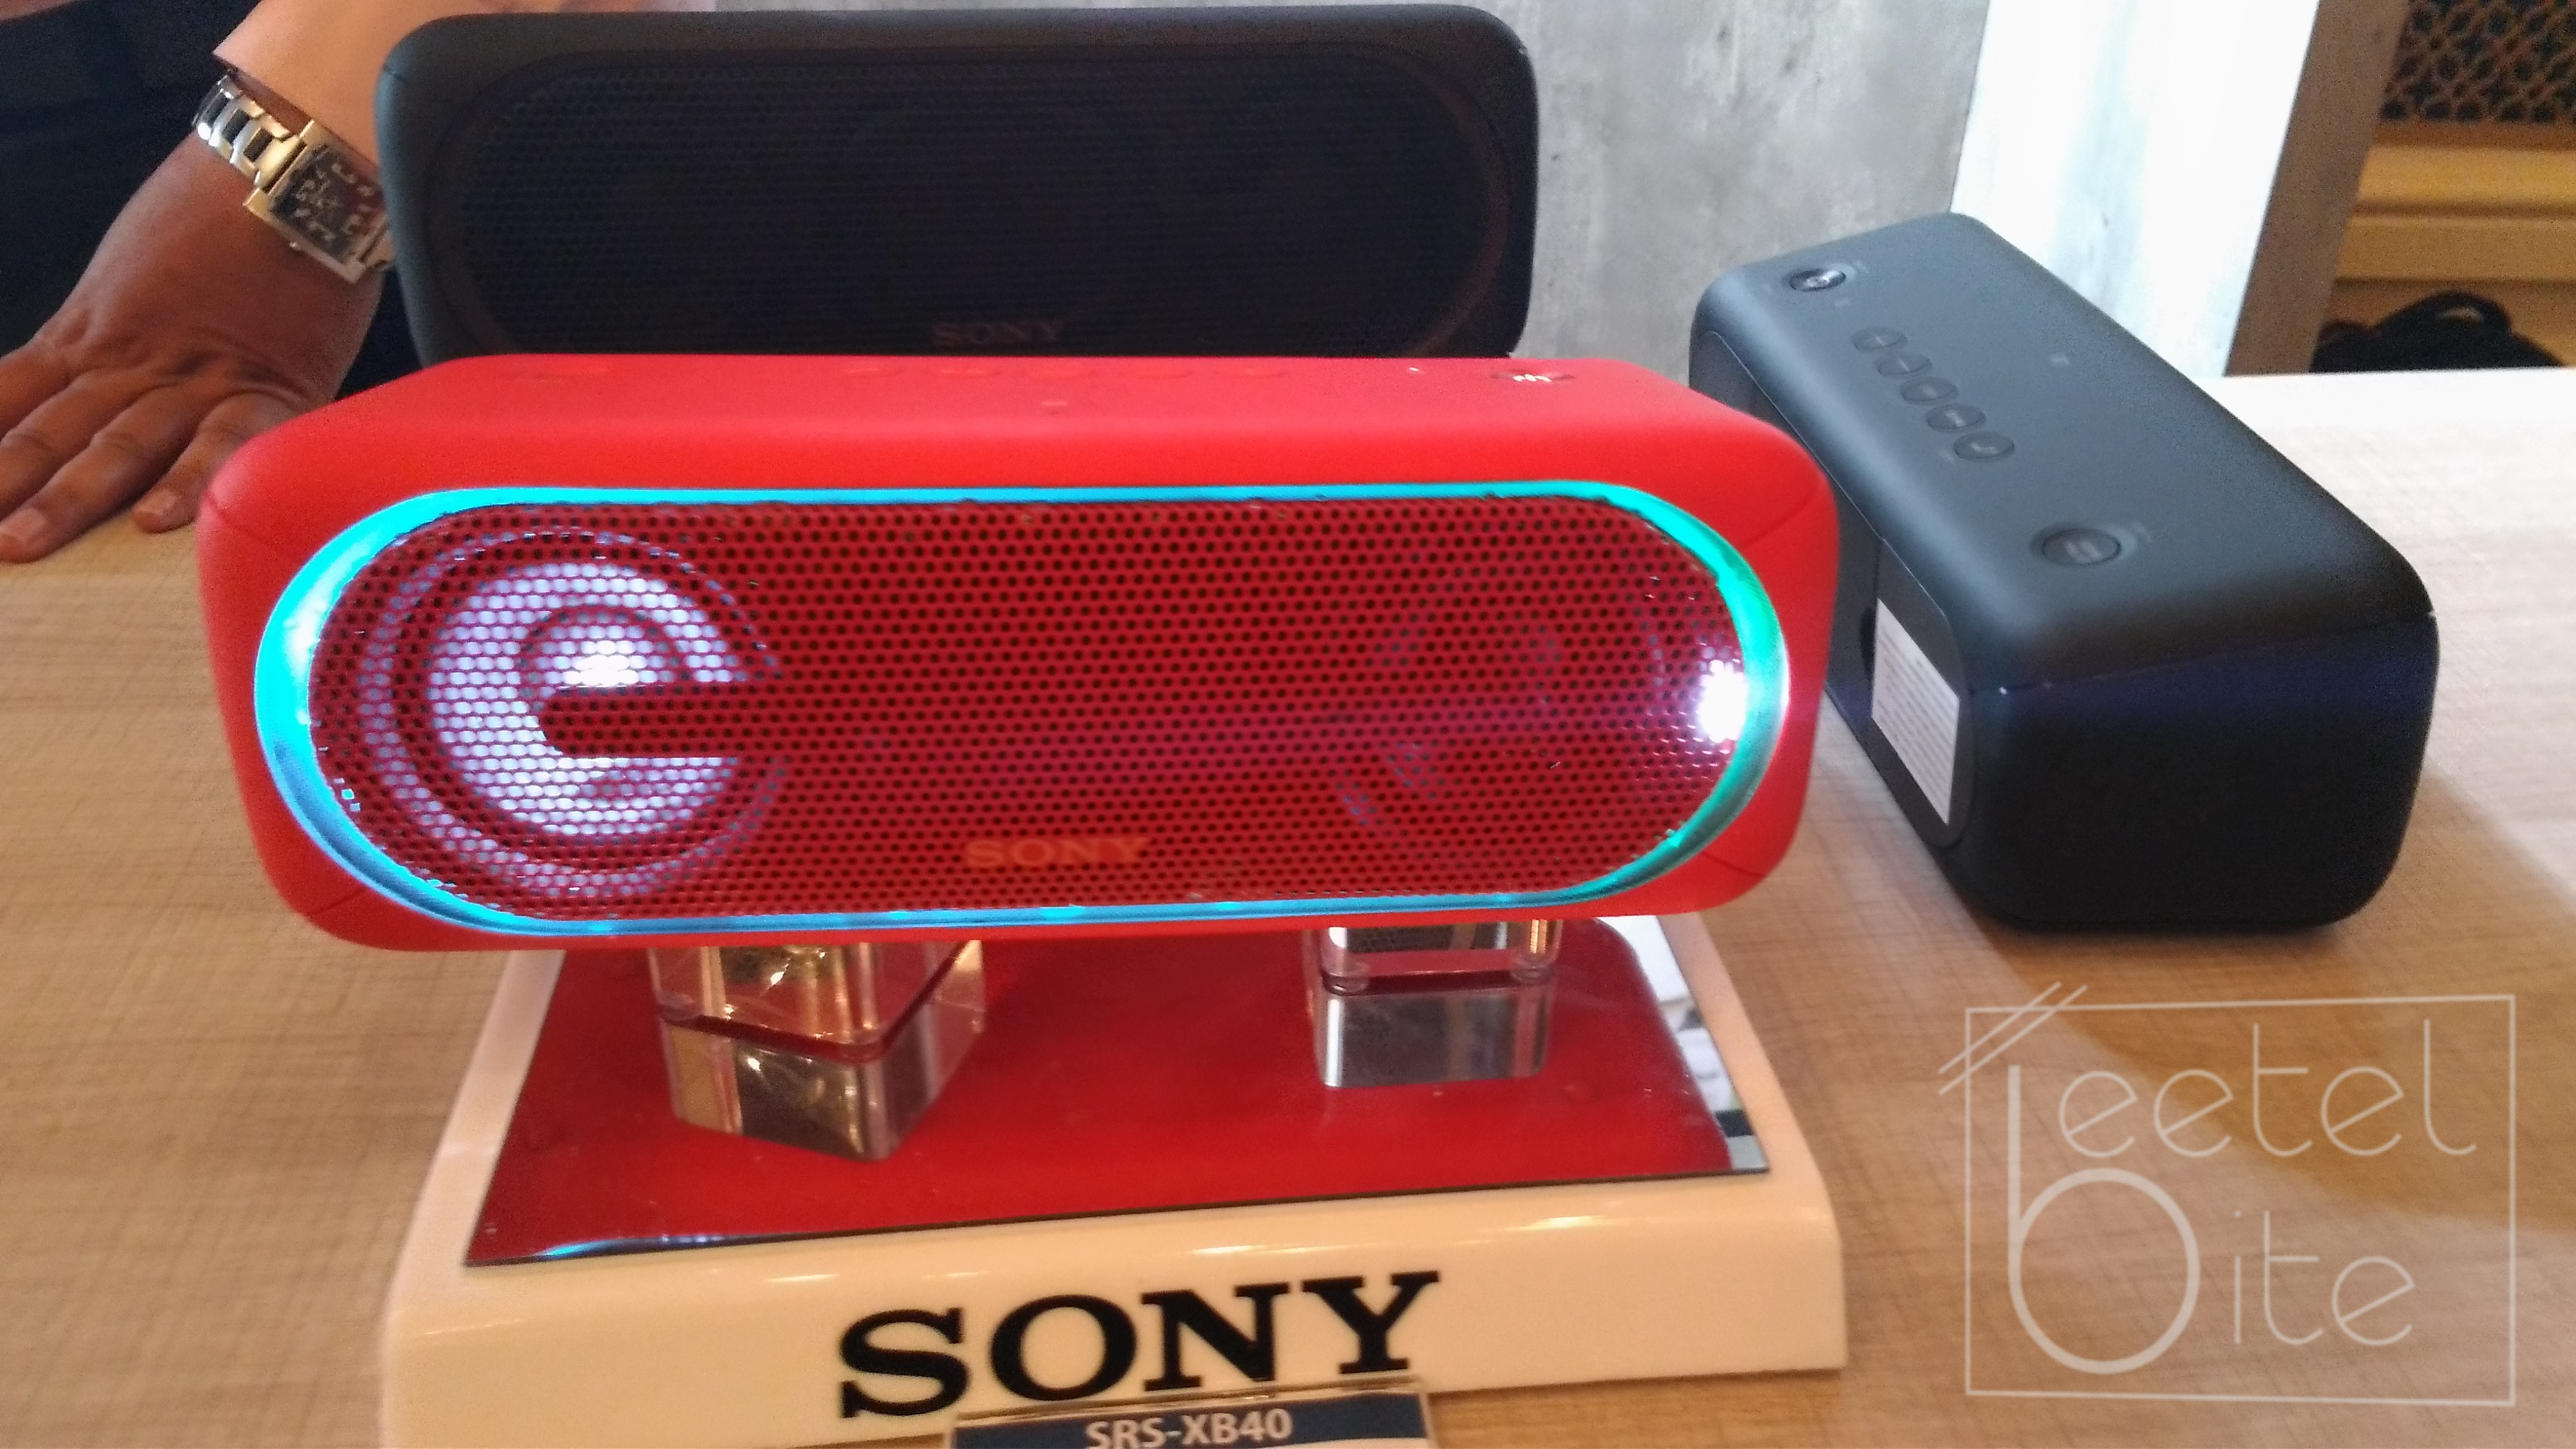 Sony Extra Bass wireless speakers